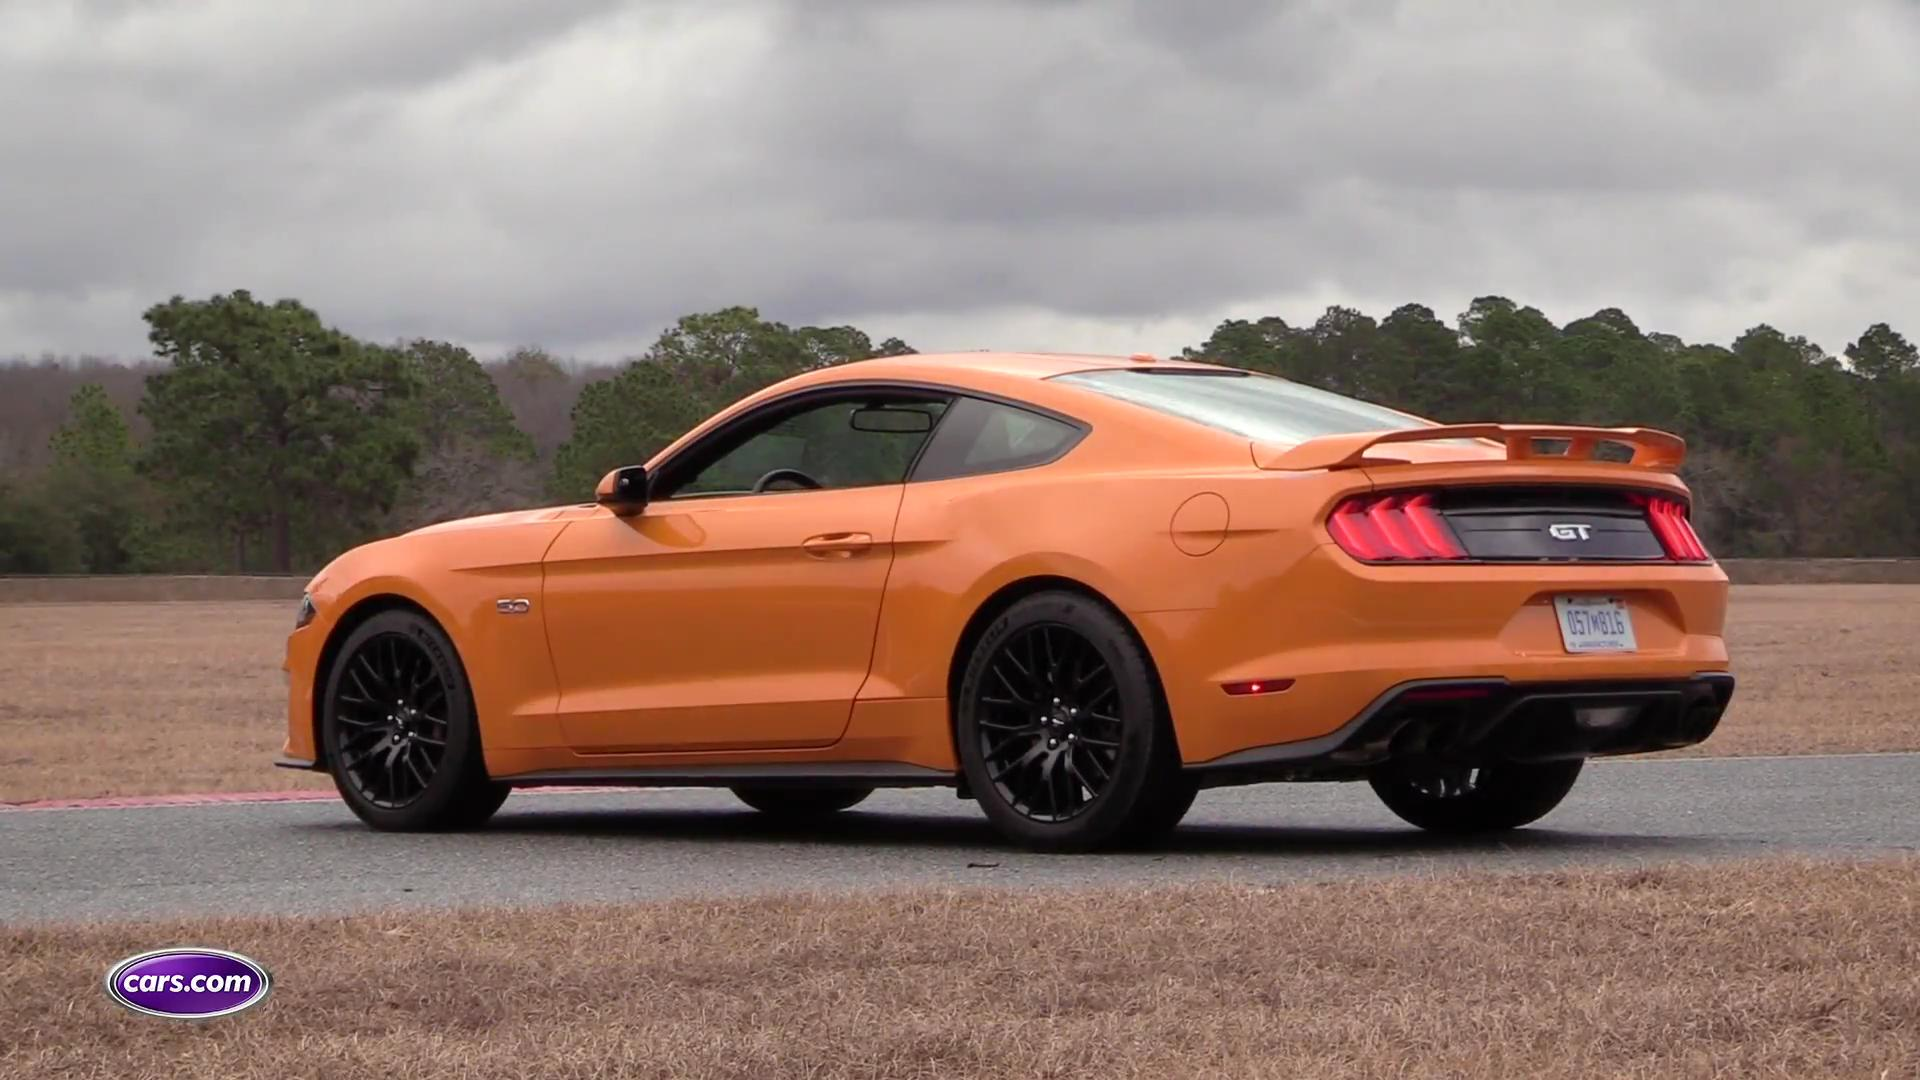 2018 Ford Mustang Overview | Cars.com